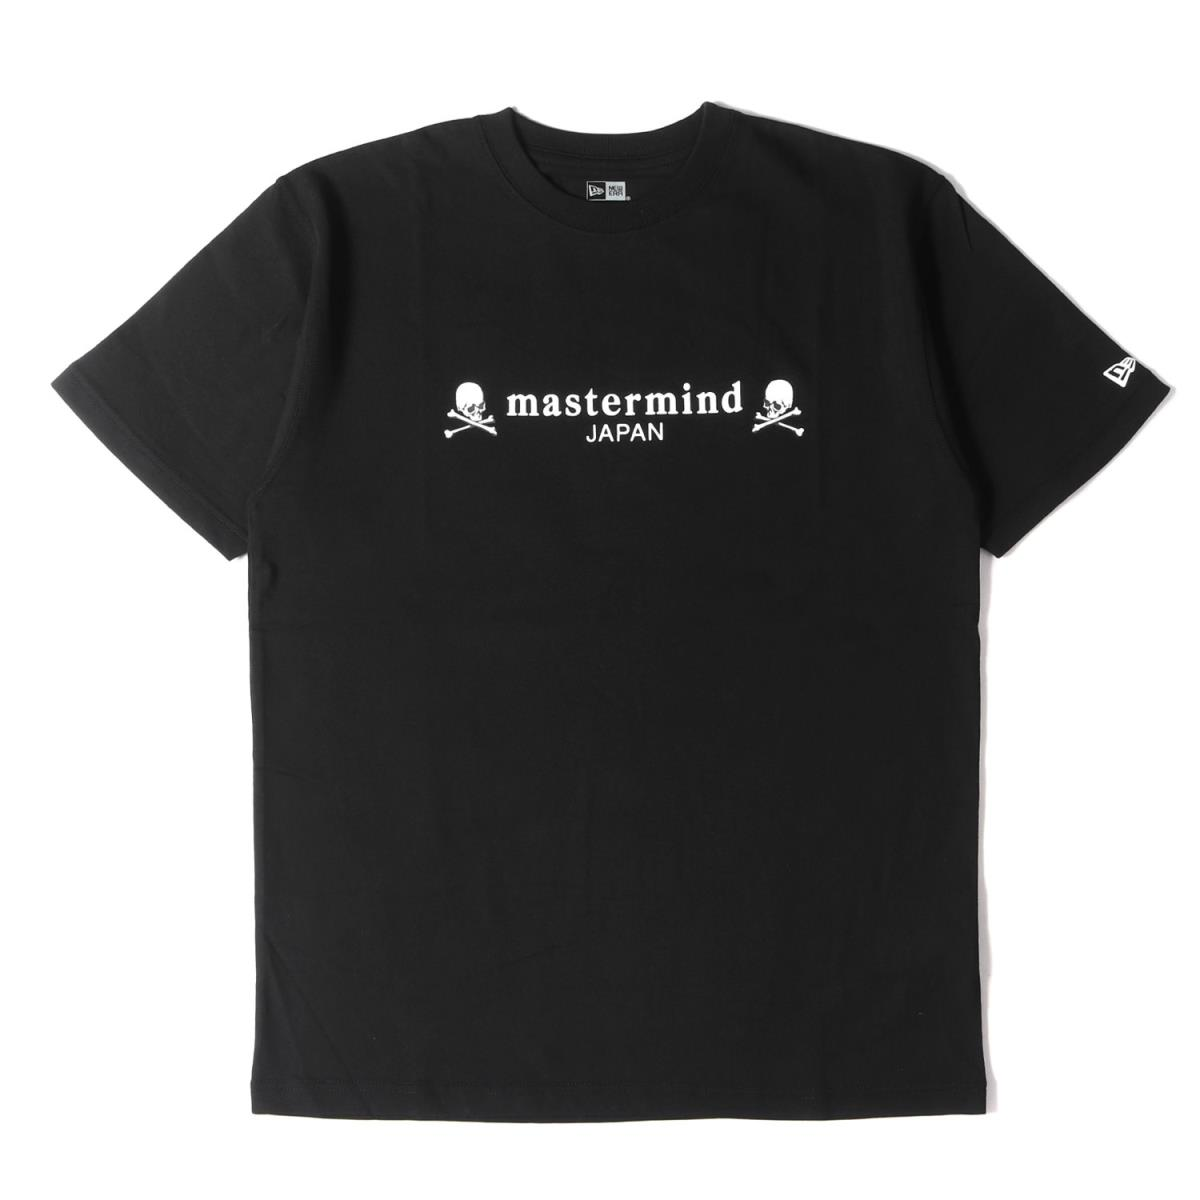 トップス, Tシャツ・カットソー mastermind JAPAN T NEW ERA 100 T 20SS XL K2690